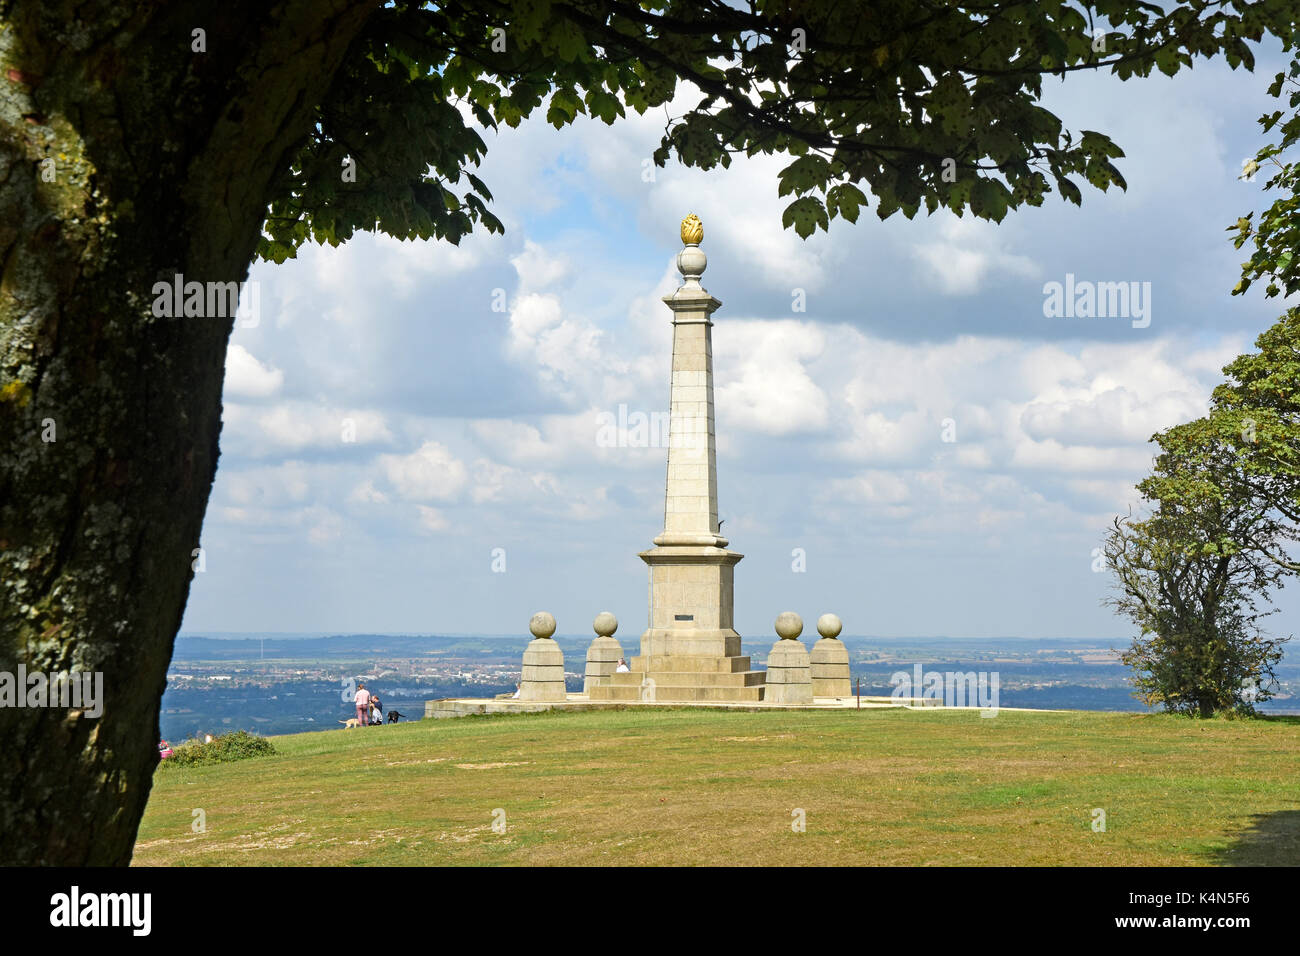 Chiltern Hills - Coombe Hill - imposing South African war  memorial - framed by trees - sunlight - cloud flecked blue sky - view over Aylesbury Plain - Stock Image